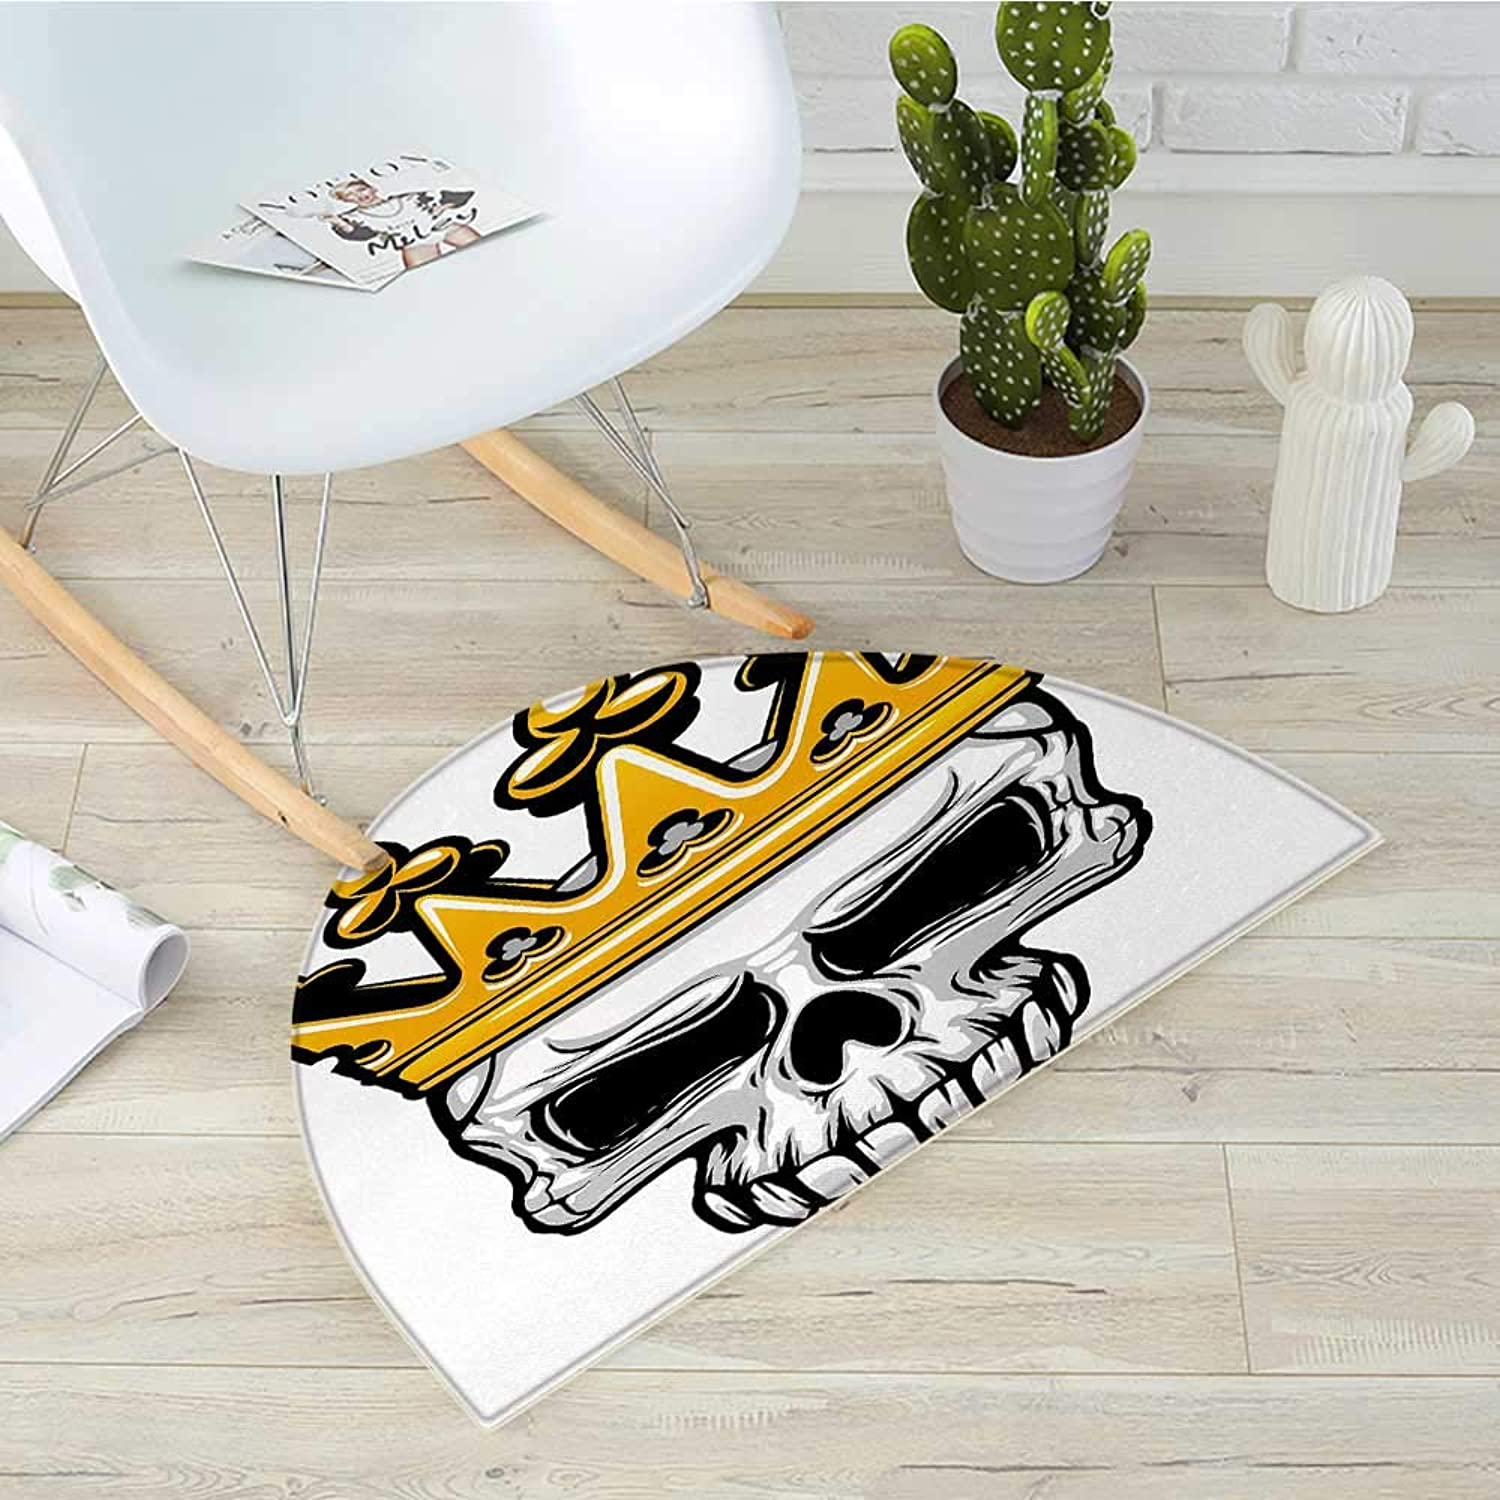 King Semicircular CushionHand Drawn Crowned Skull Cranium with Cgoldnet Tiara Halloween Themed Image Entry Door Mat H 31.5  xD 47.2  golden and Pale Grey